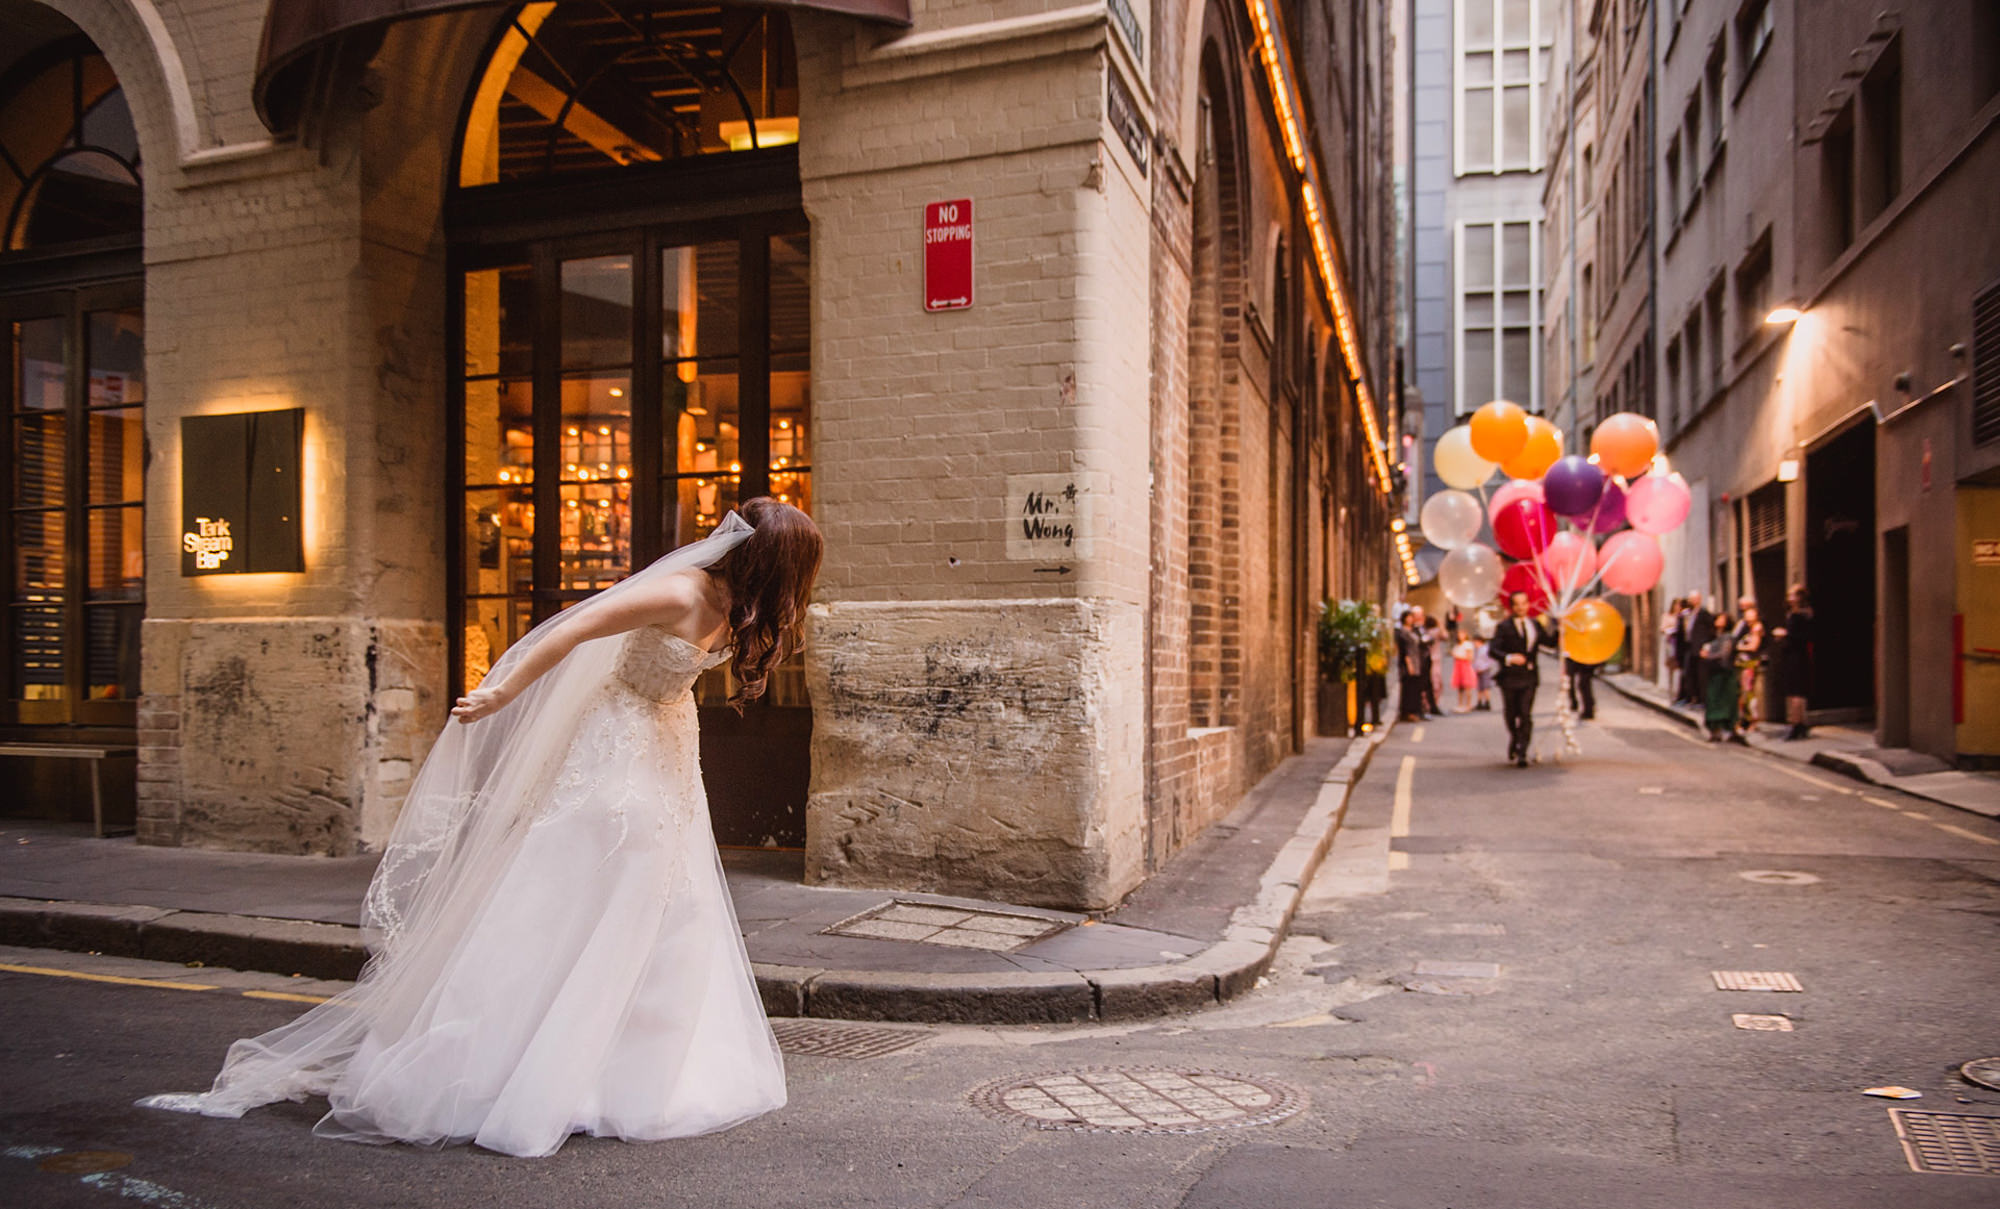 Bride peeks round corner to see groom coming with big balloons  -  Studio Impressions Photography